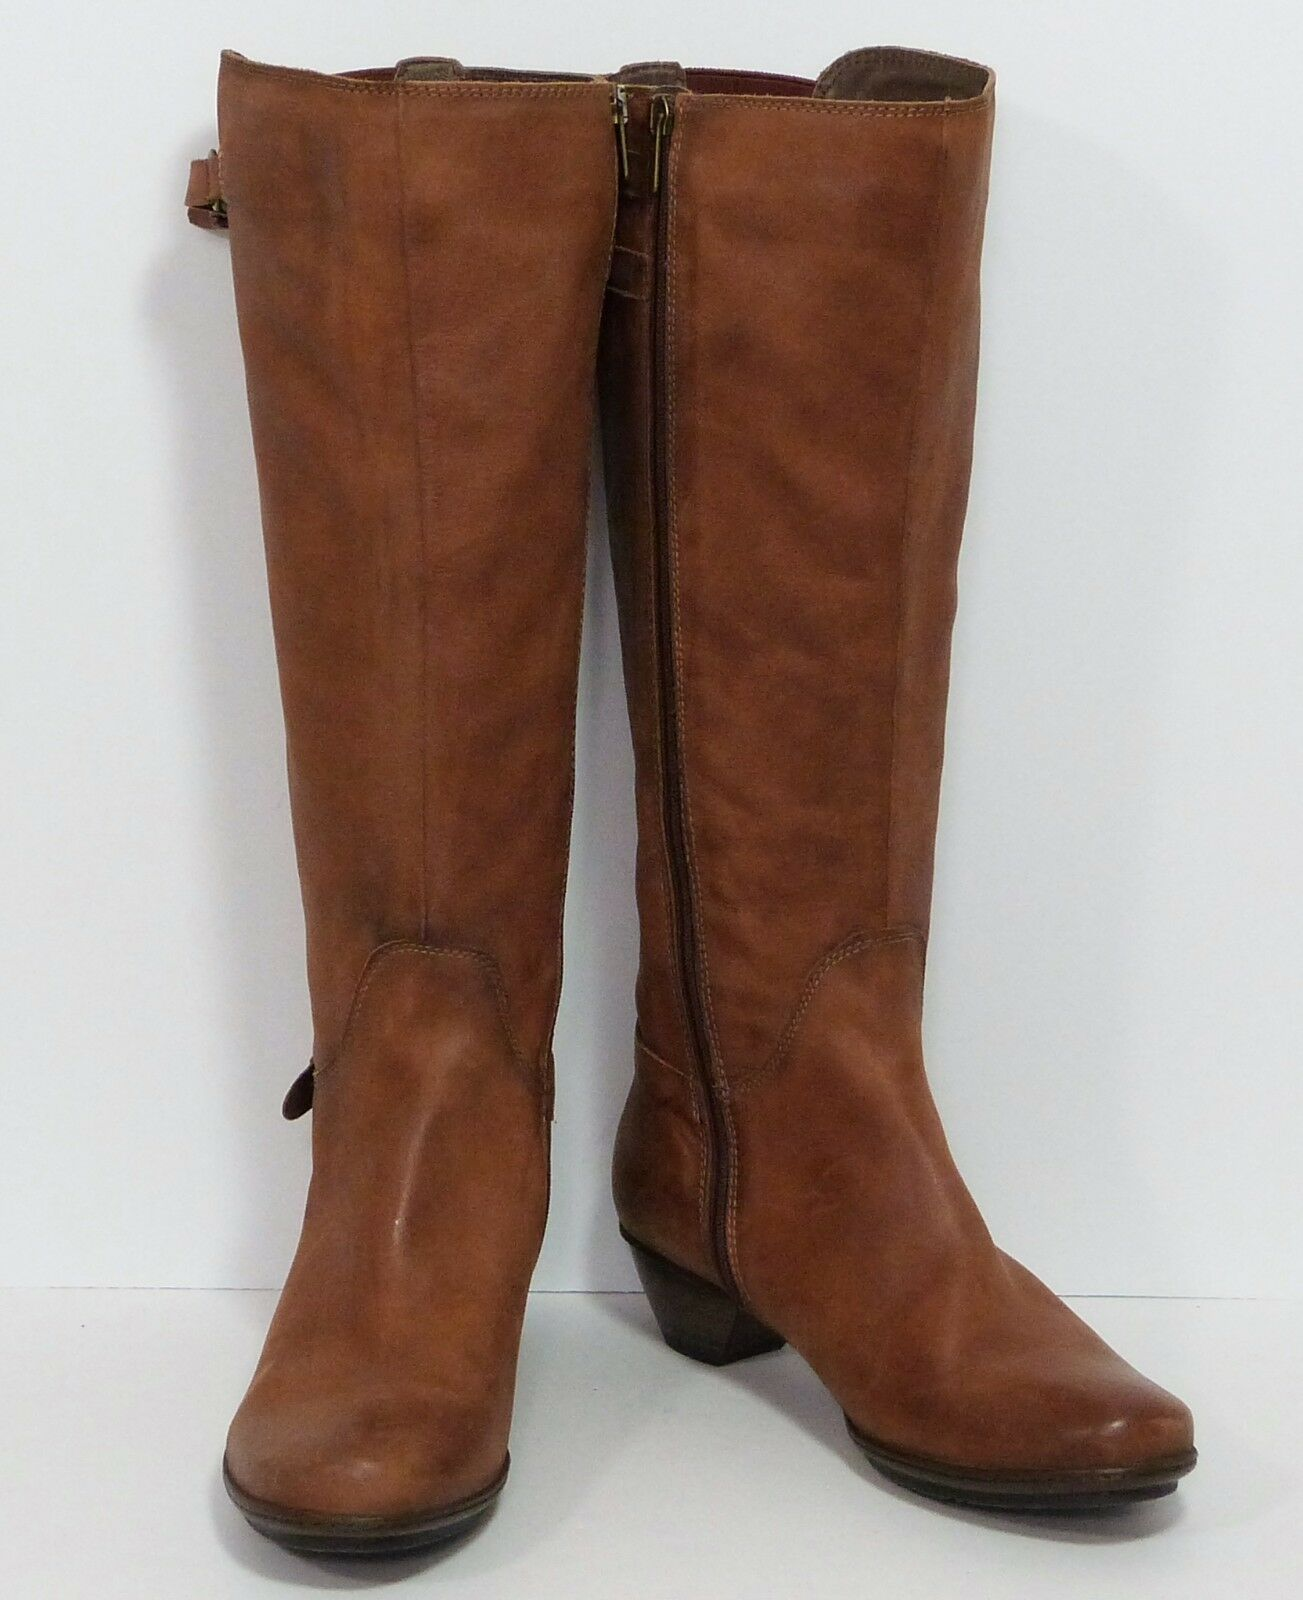 NWOB Pikolinos Carmel Brown Leather Leather Leather Calf High Riding Boots Womens 41 EUR 10.5 US d57cfe